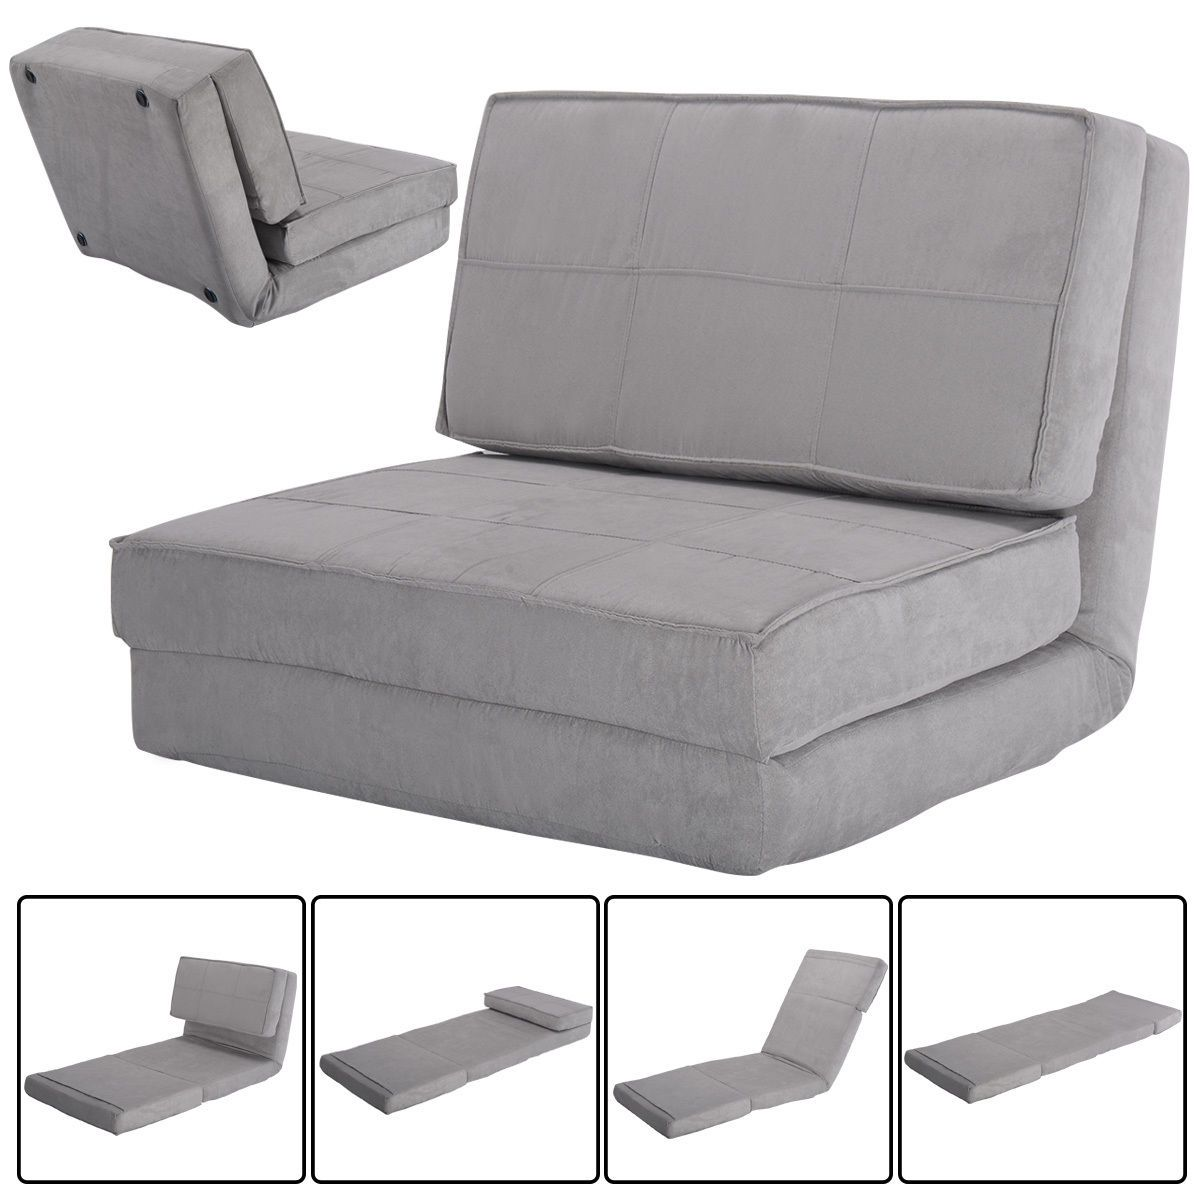 Convertible Lounger Folding Sofa Sleeper Bed Folding Sofa Bed